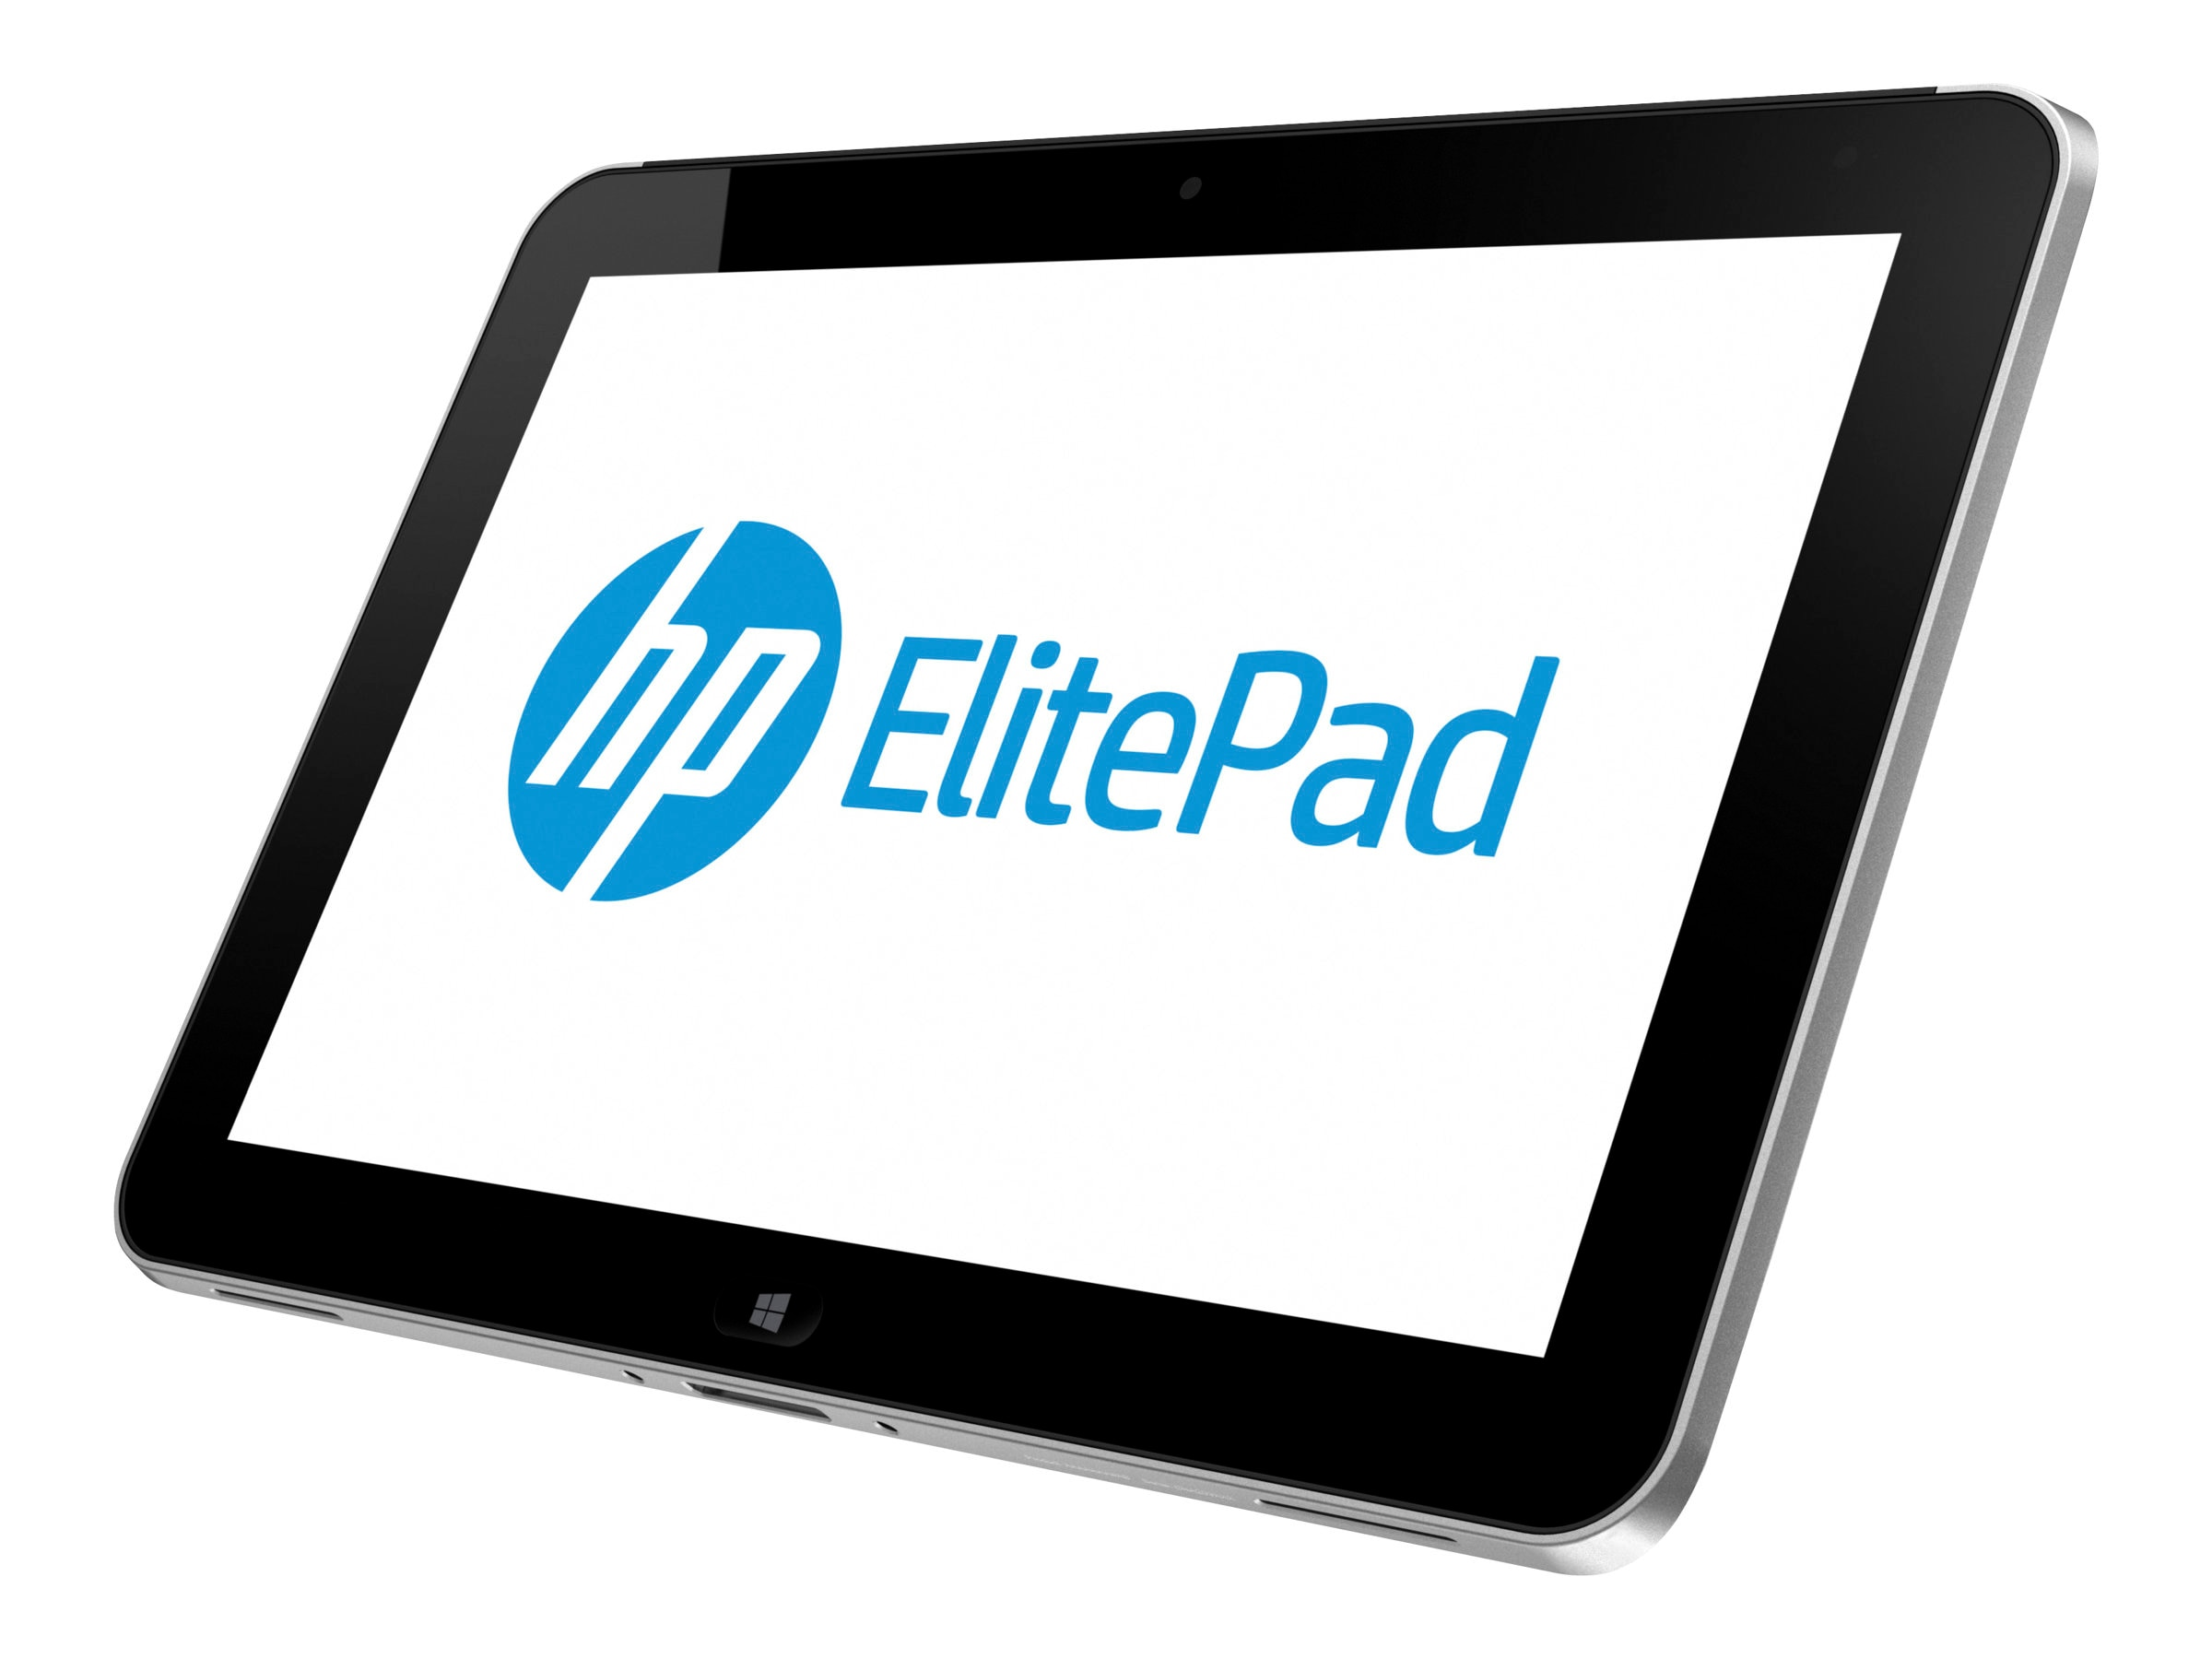 HP ElitePad 900 1.8GHz processor Windows 8, E1Z47UT#ABA, 15960371, Tablets